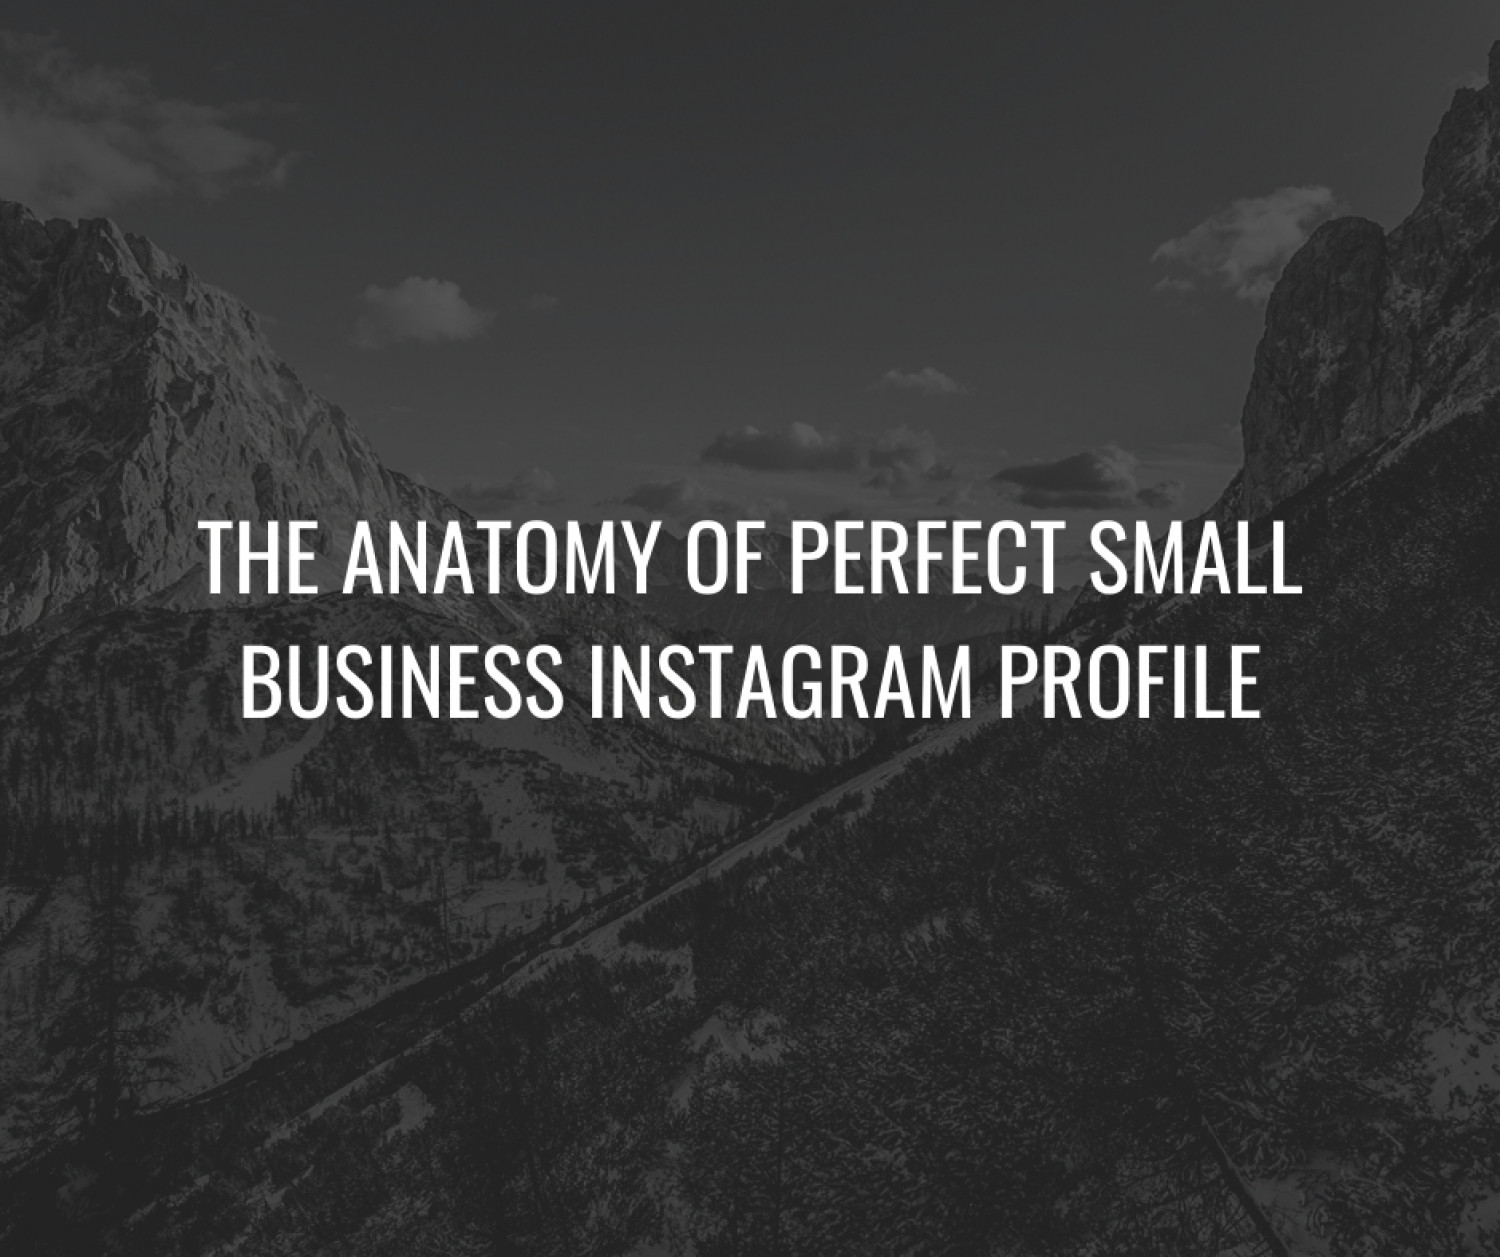 The Anatomy of Perfect Small Business Instagram Profile Infographic